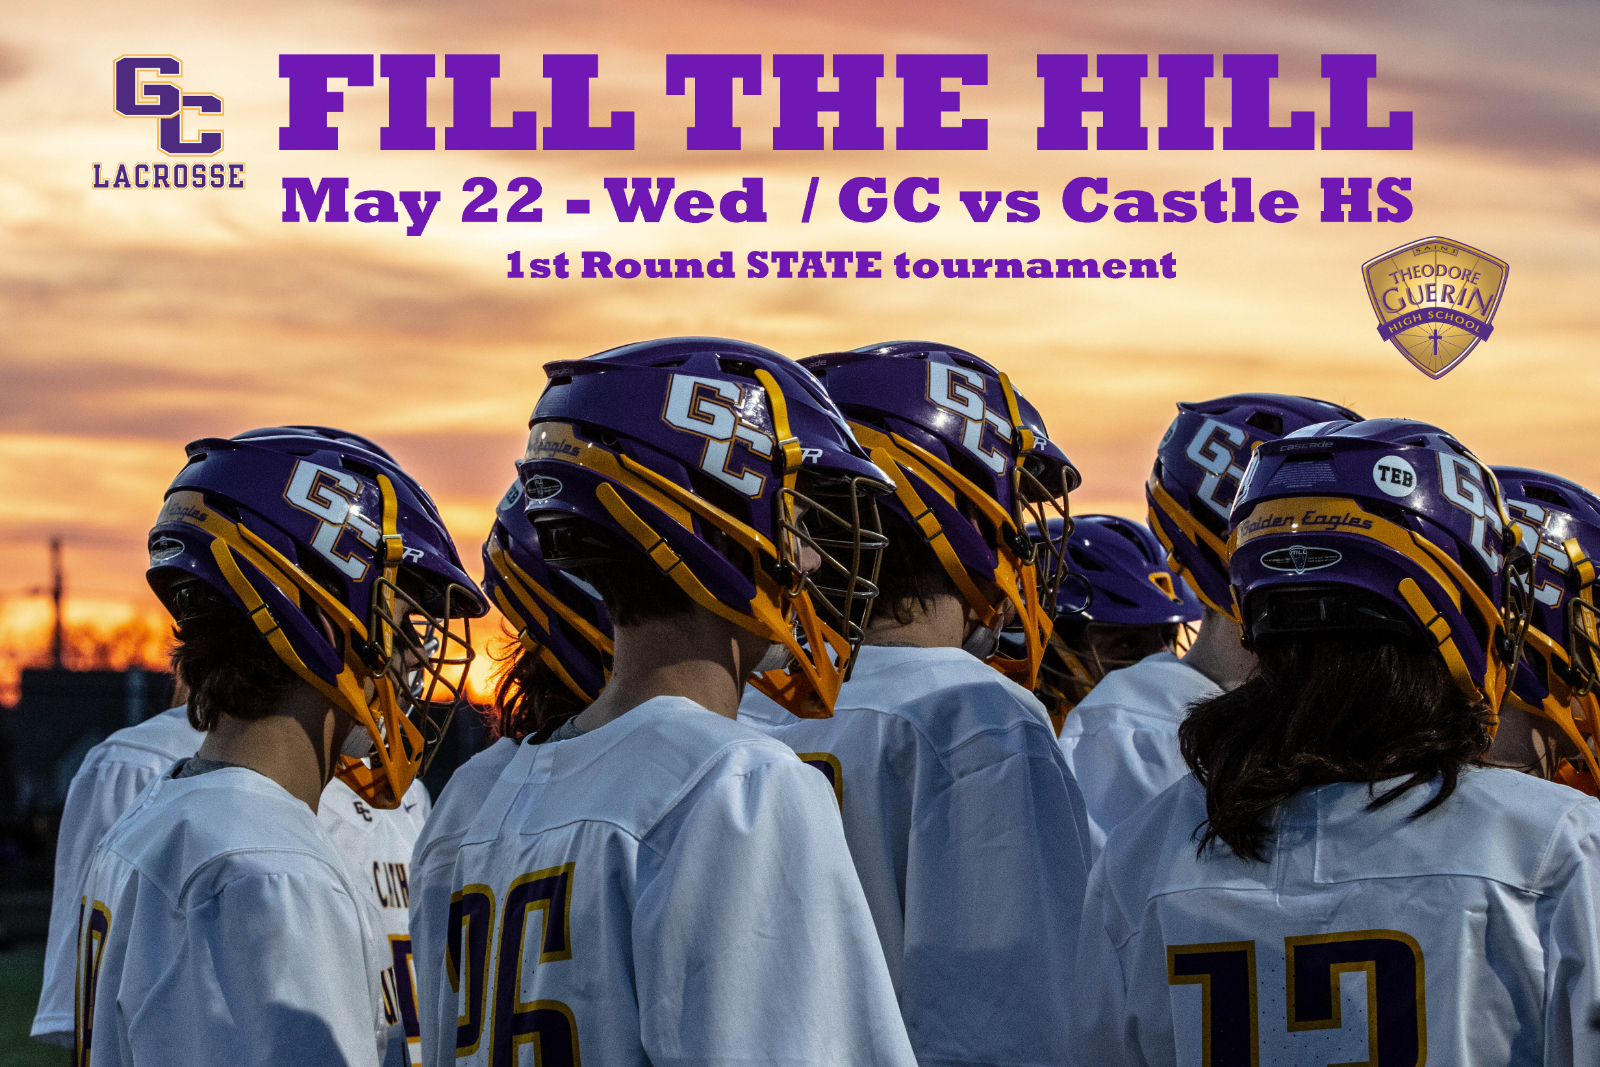 Game Day – #5 Guerin Catholic vs #12 Castle HS – May 22nd at 7:30 pm